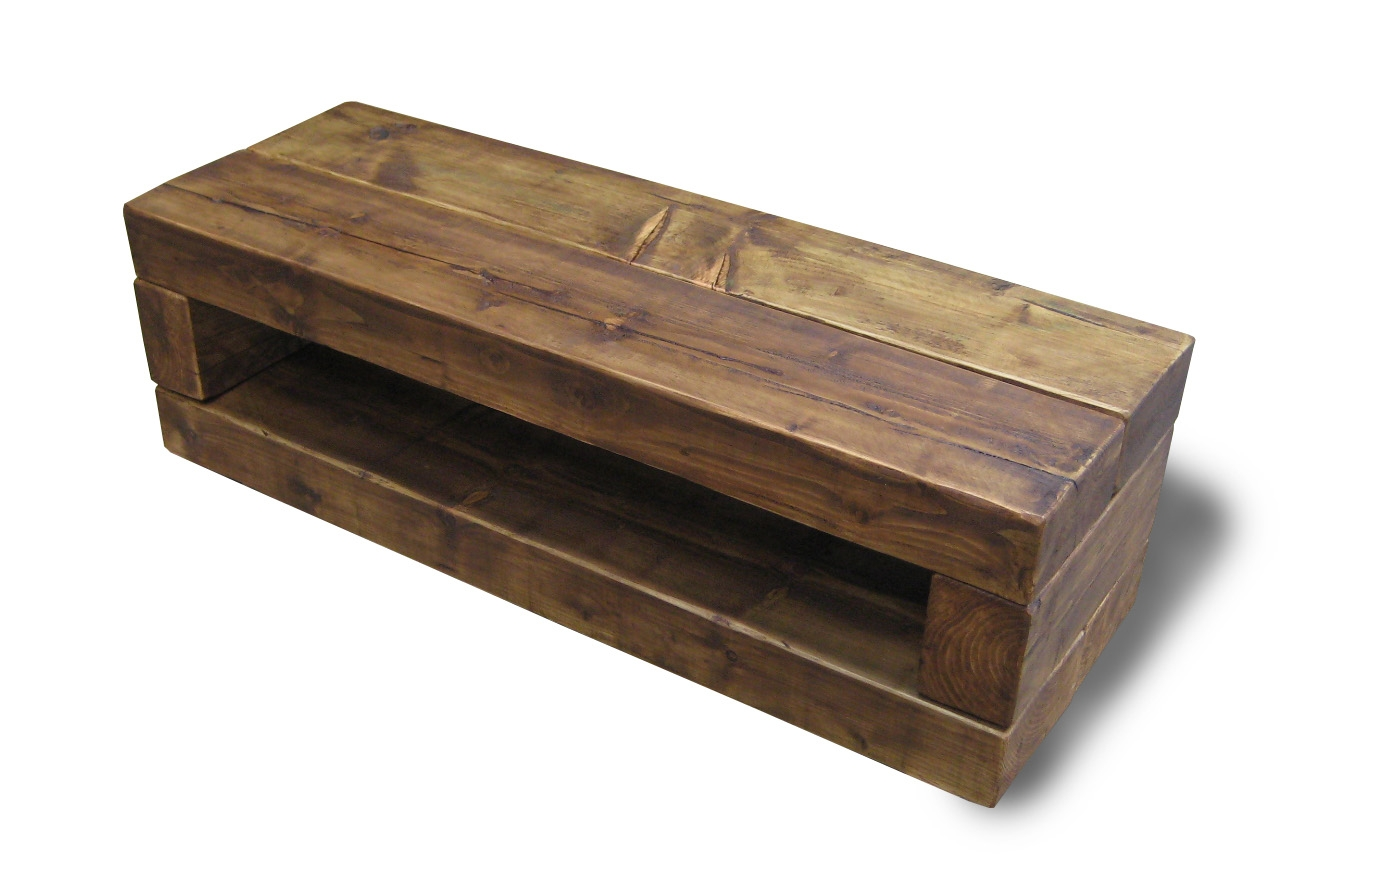 Chunky Stretch Tv Stand The Cool Wood Company Pertaining To Handmade Tv Unit (View 11 of 15)